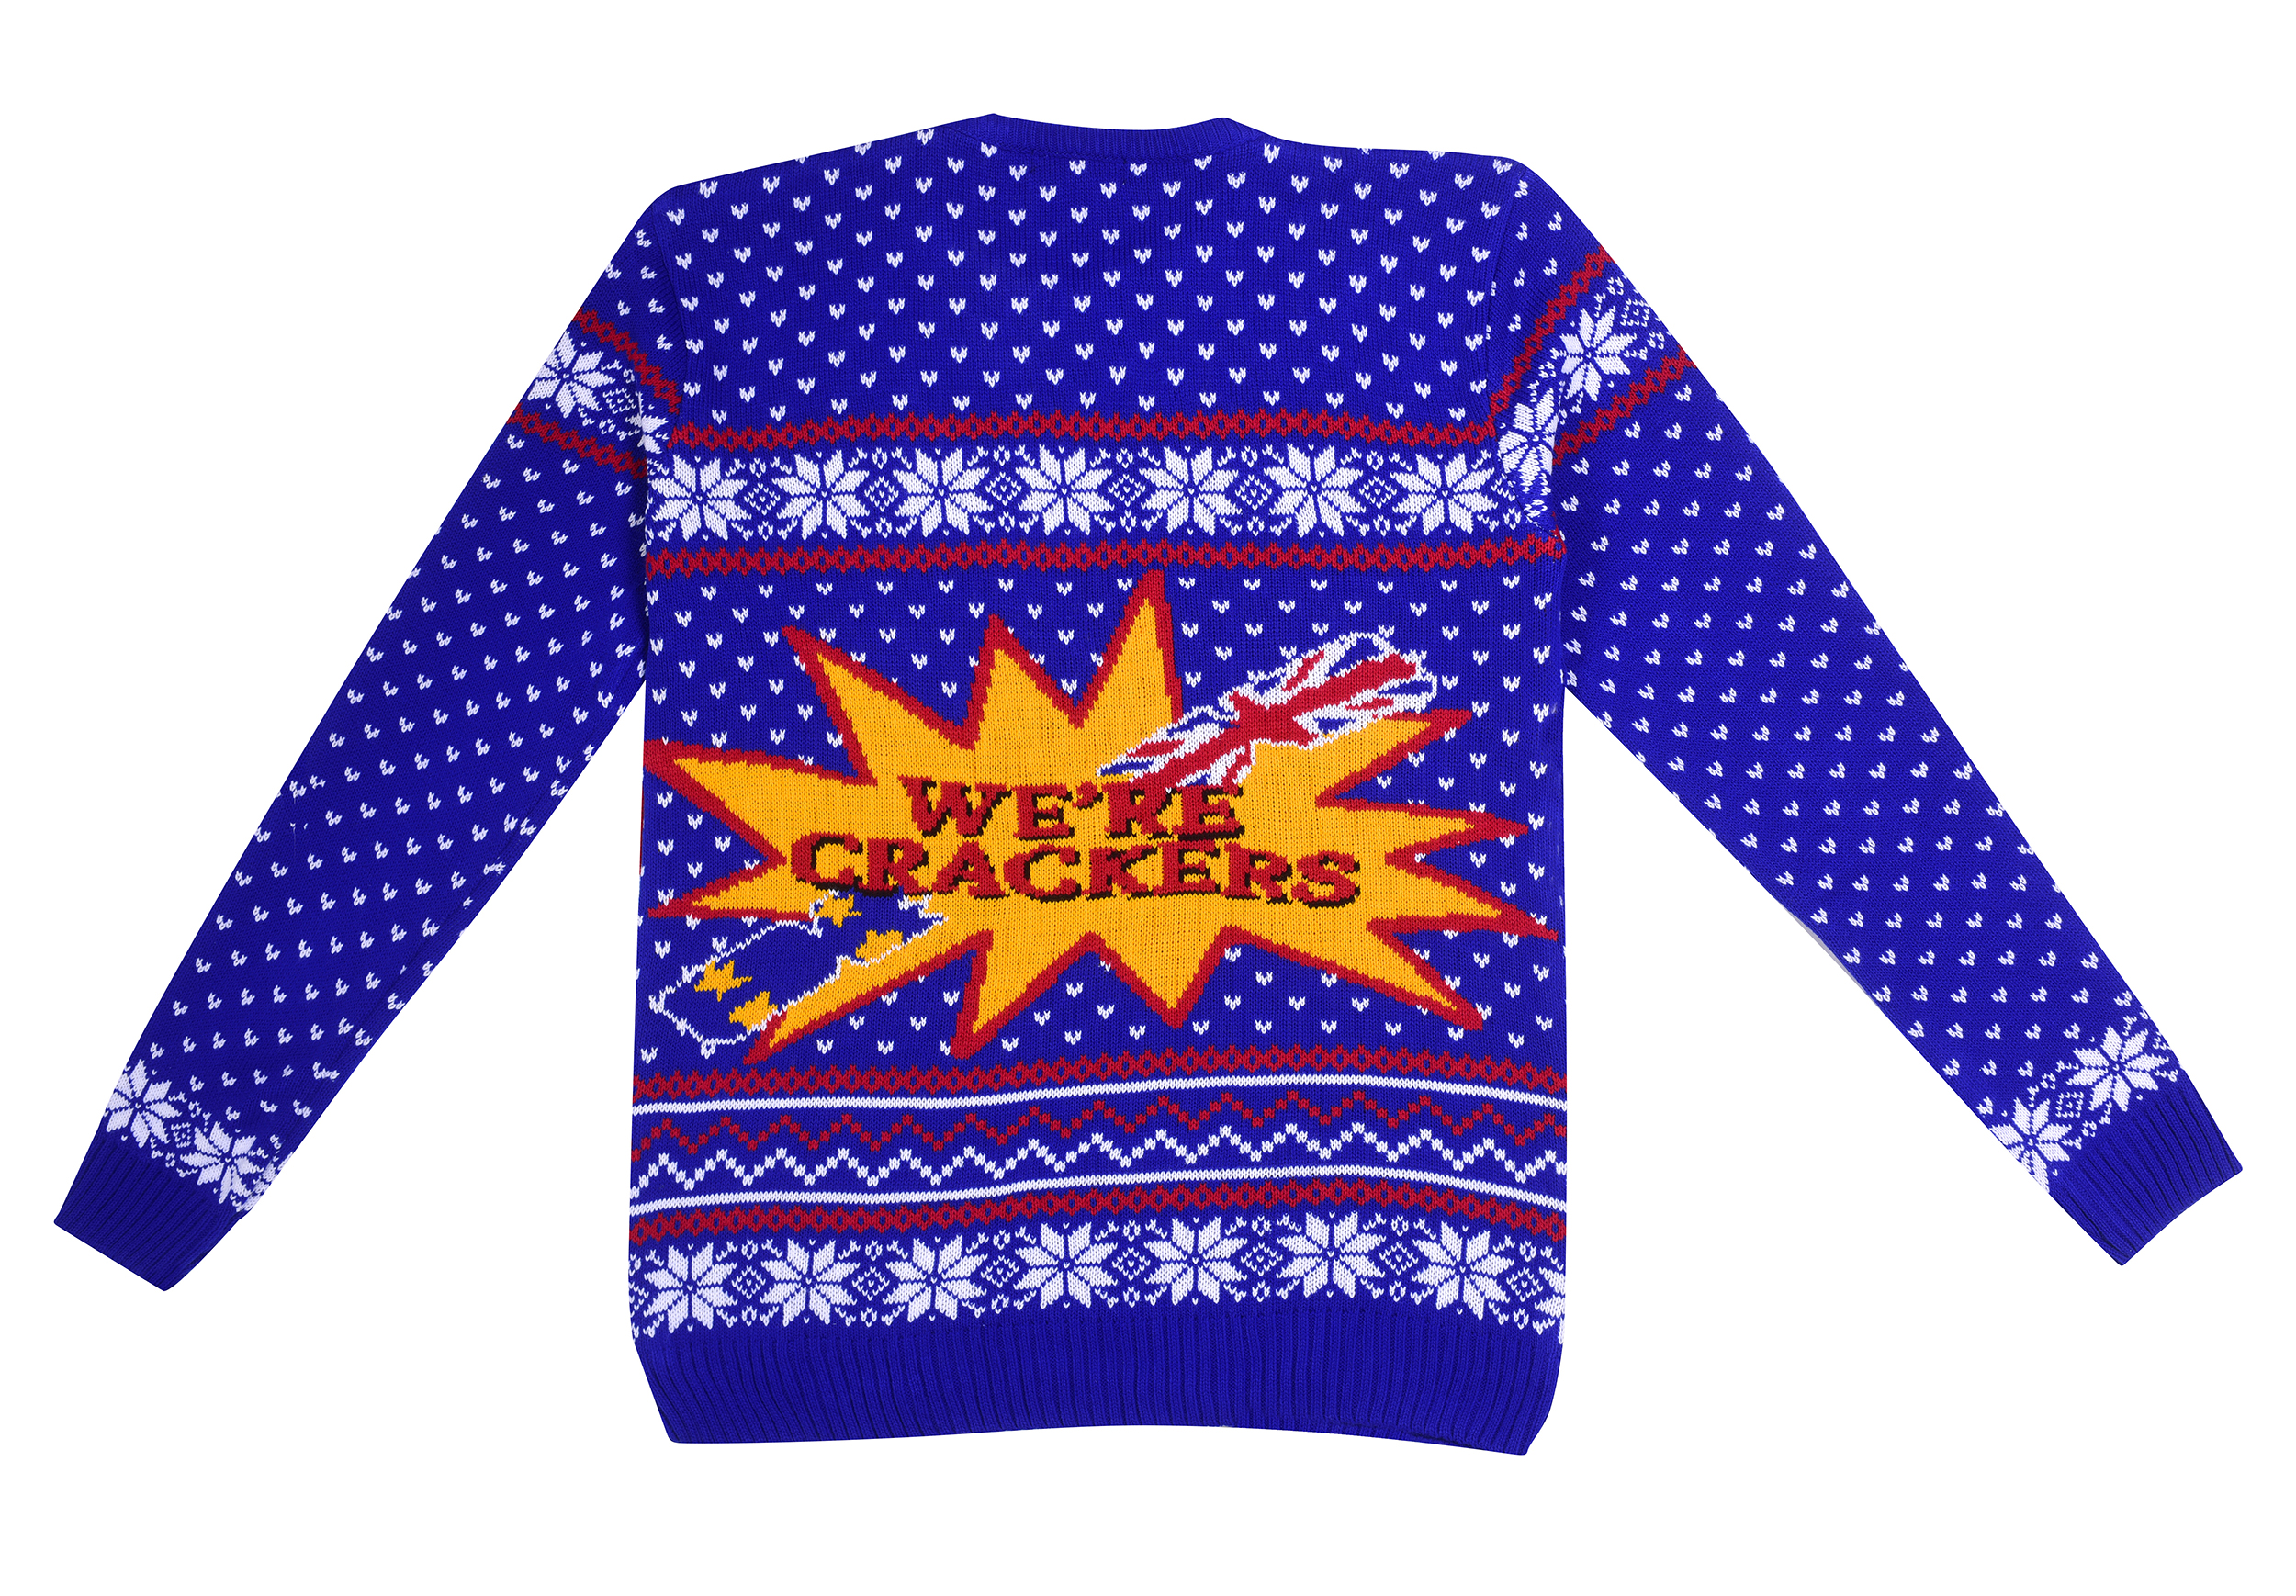 Brexit Remain campaign Christmas jumper